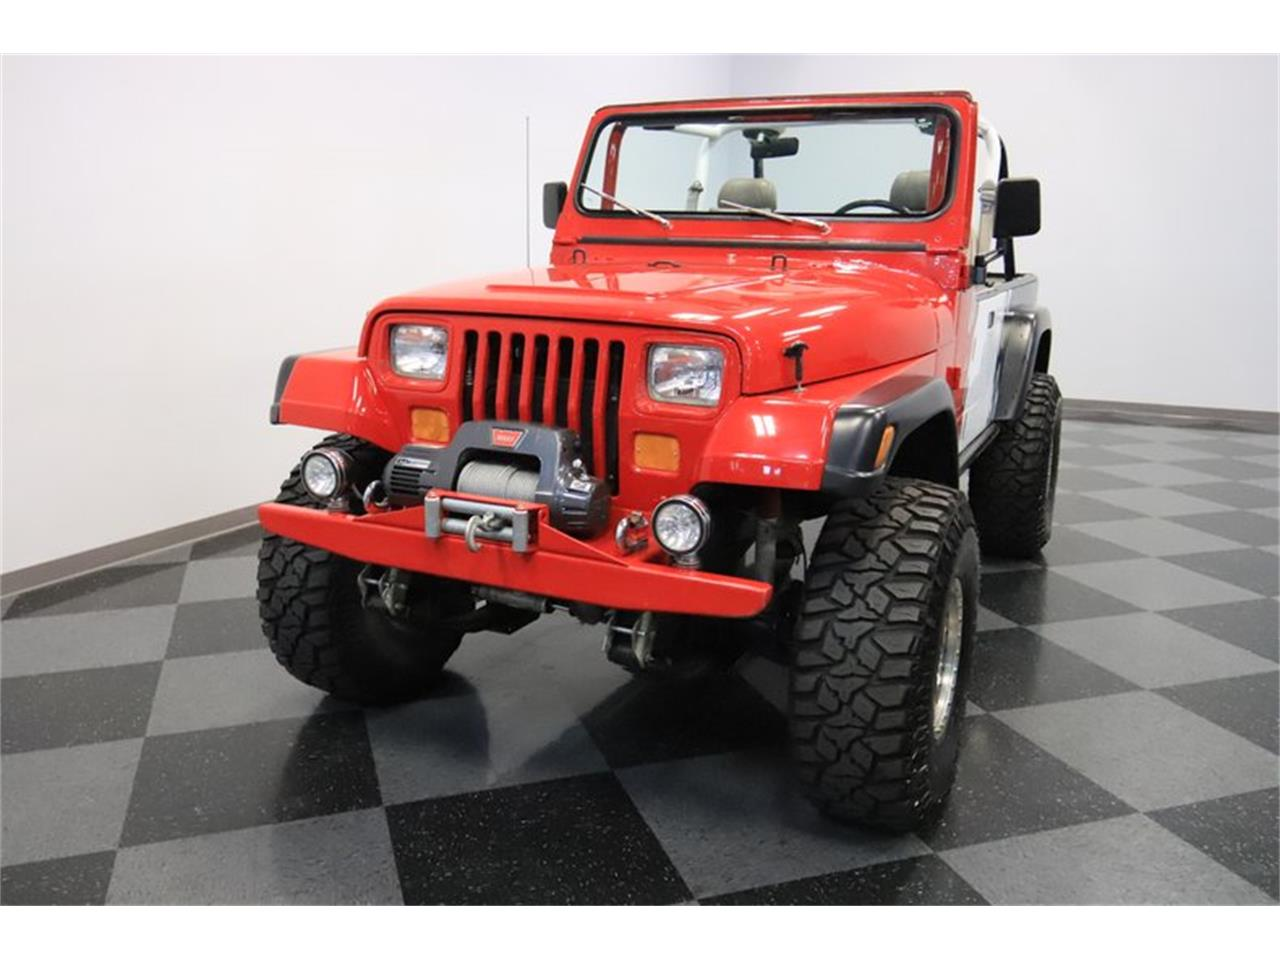 Large Picture of 1983 Jeep CJ8 Scrambler - $36,995.00 Offered by Streetside Classics - Phoenix - Q5HM